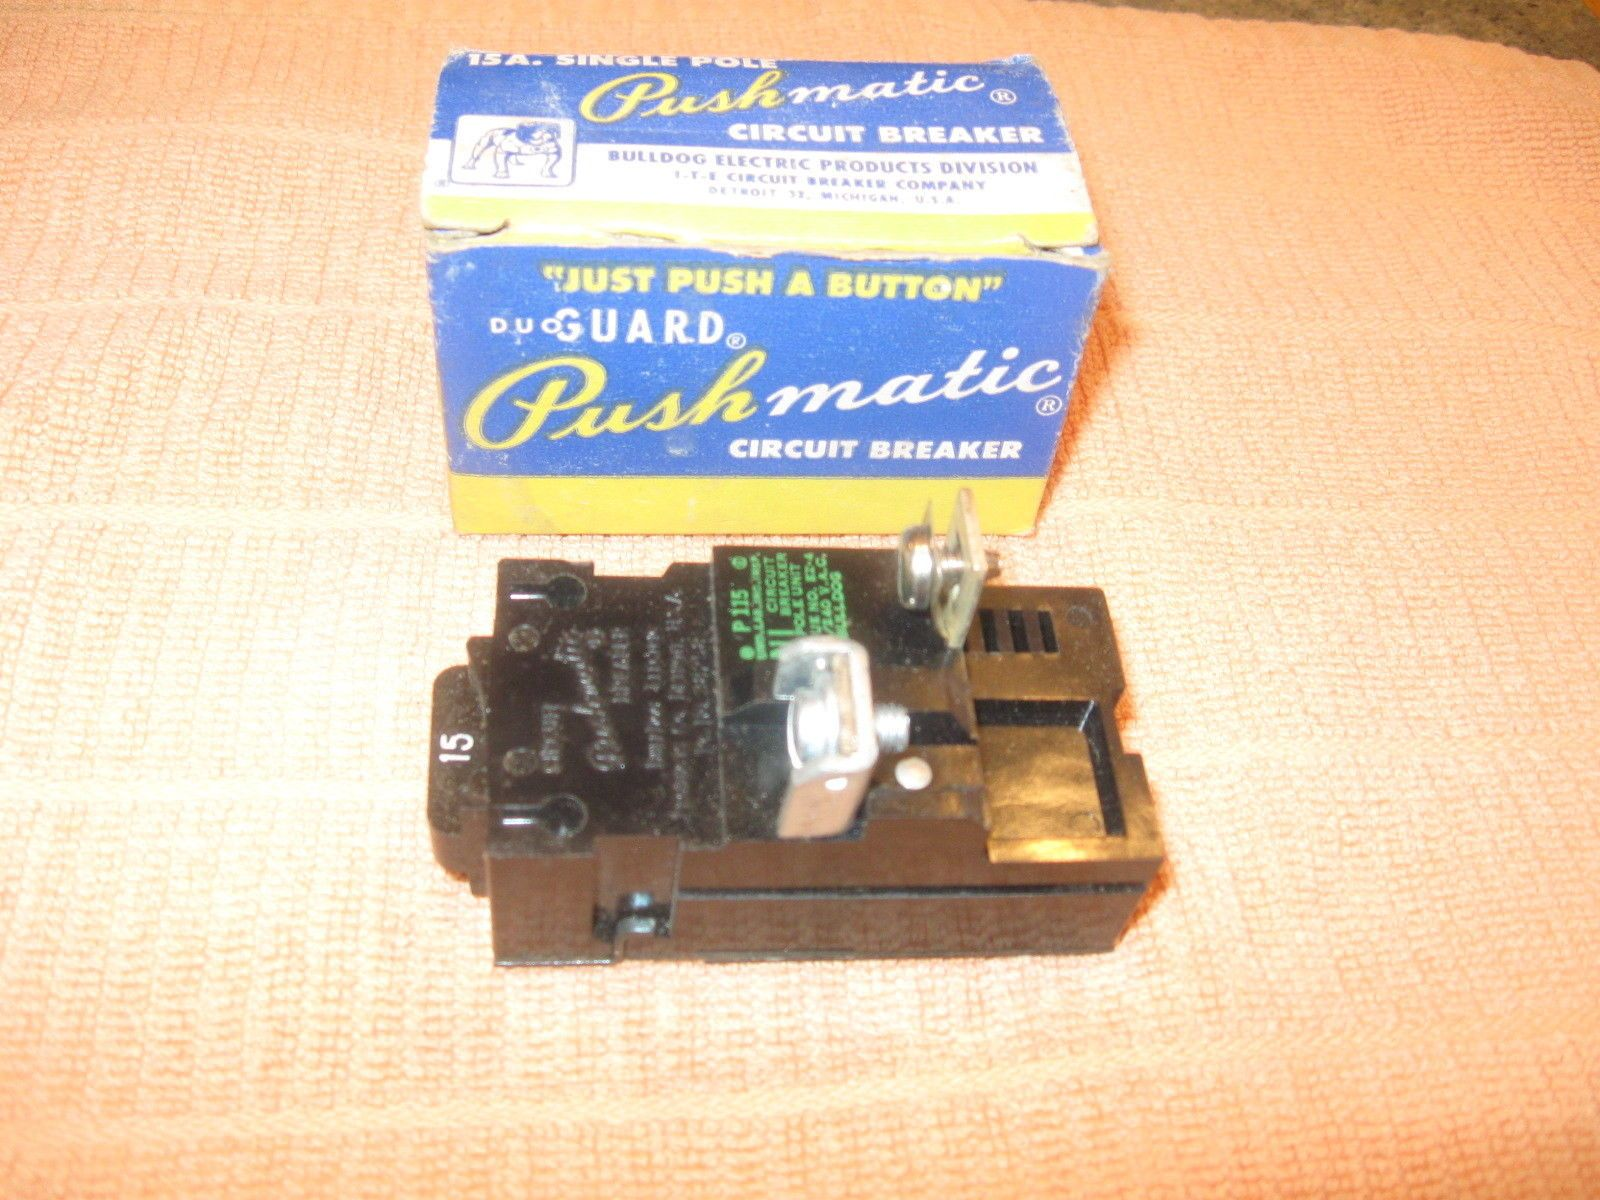 small resolution of circuit breakers and fuse boxes 20596 pushmatic p115 bulldog 15 amp ite gould single pole